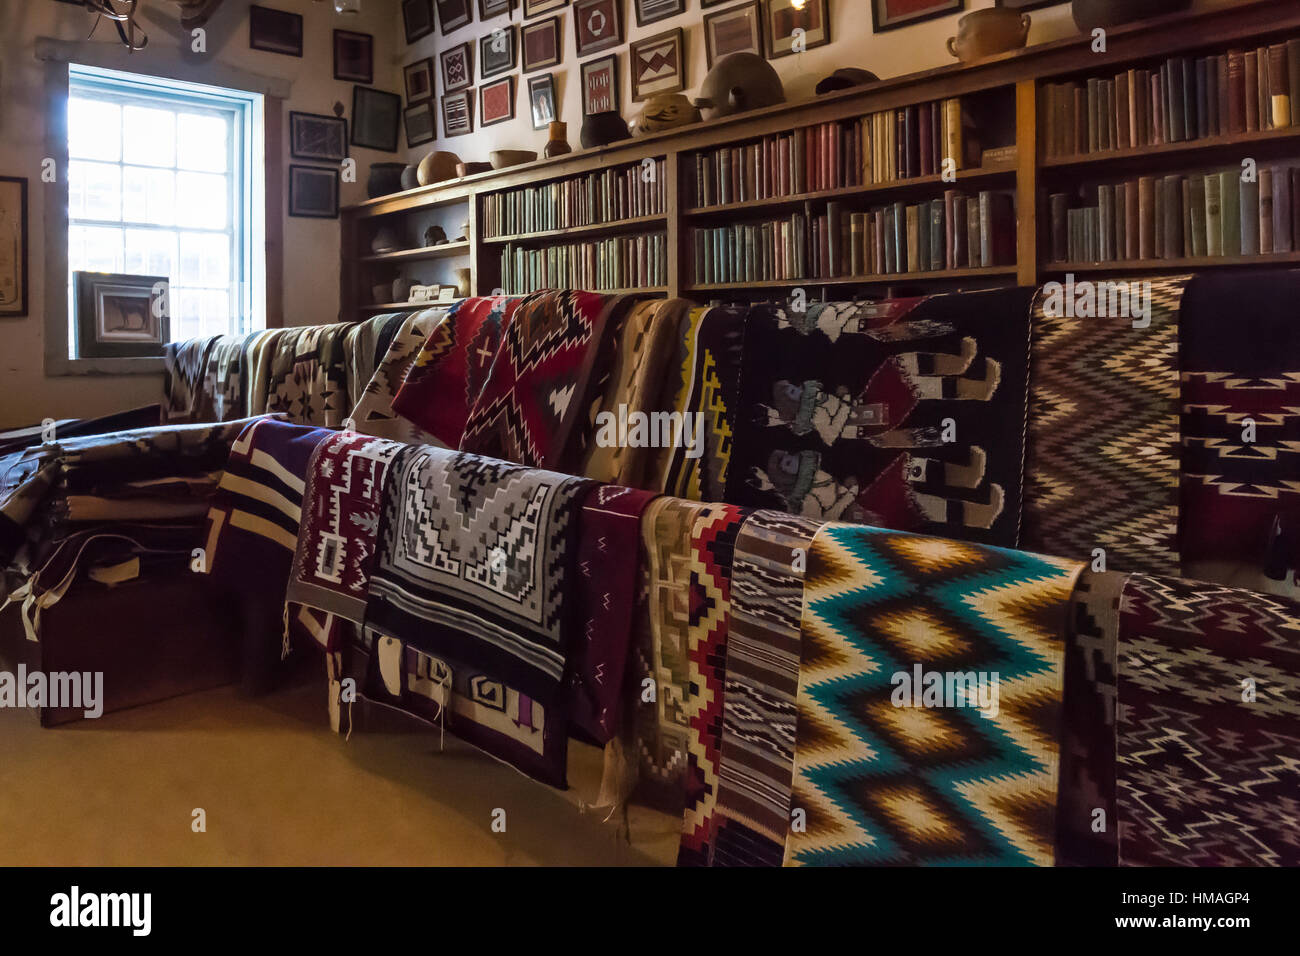 Navajo Rugs For Sale In The Trading Post Hubbell Trading Post Stock